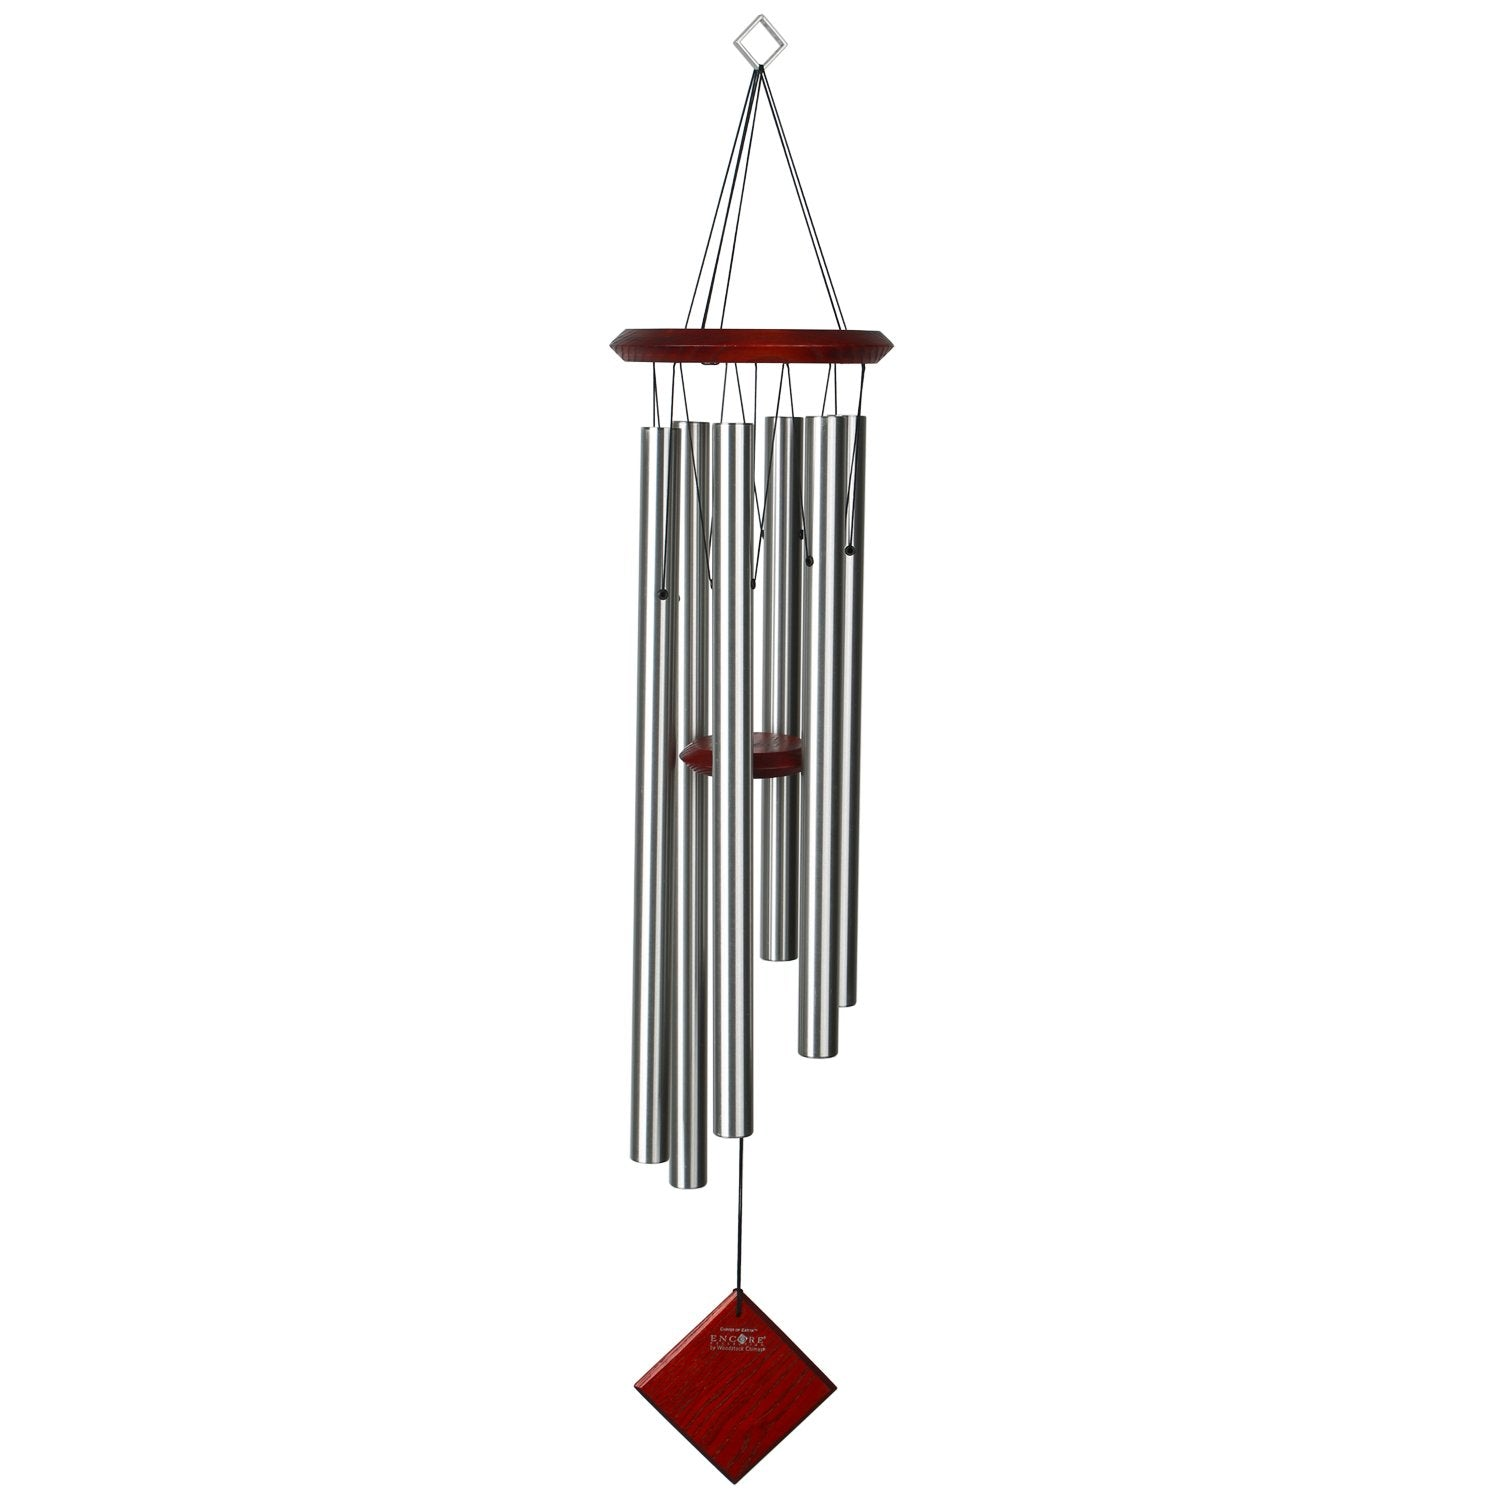 Encore Chimes of Earth - Silver full product image